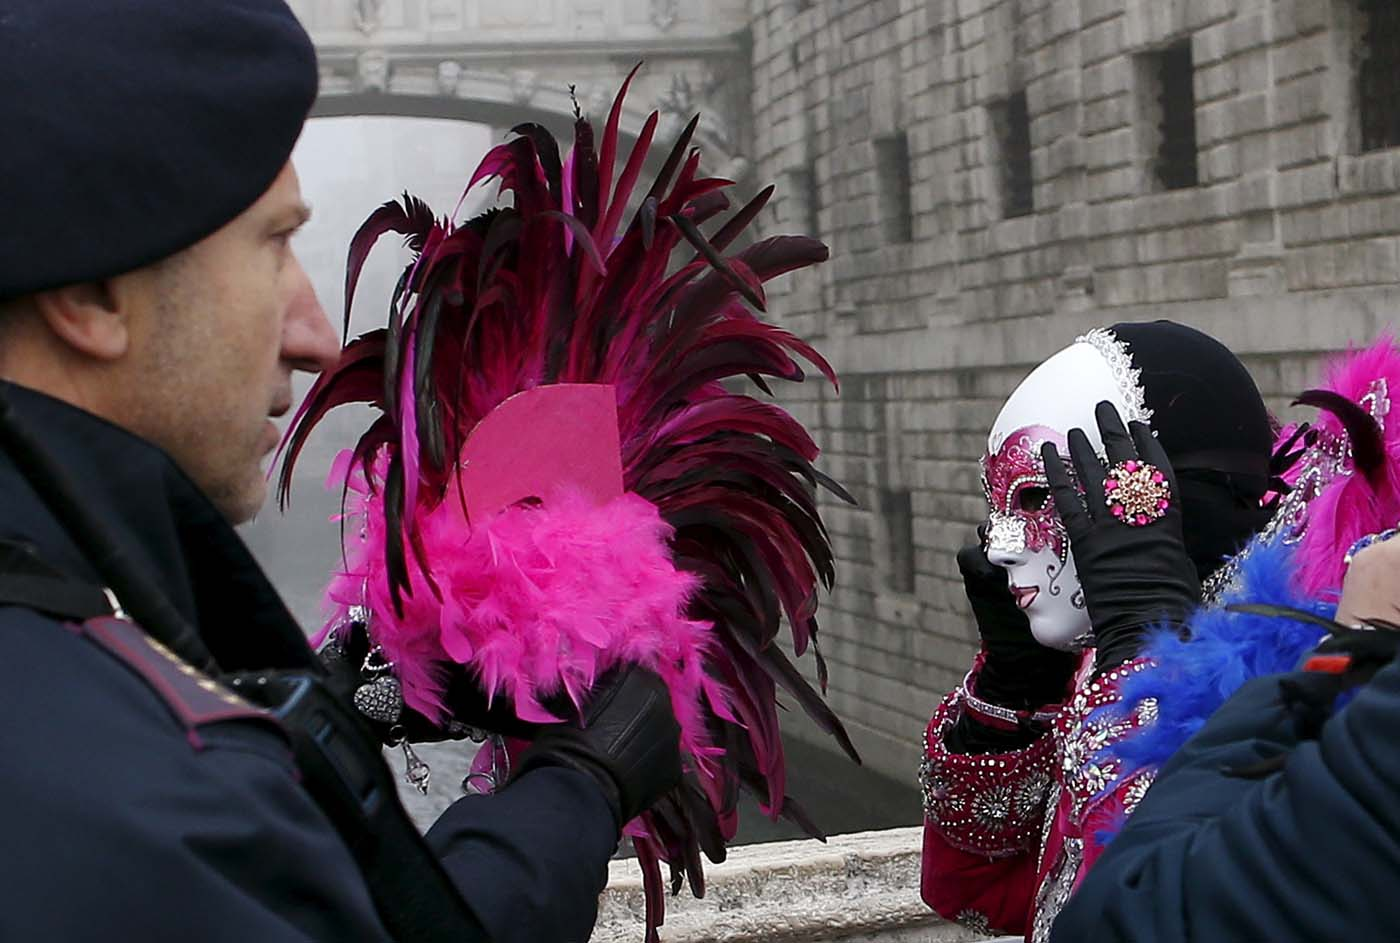 Italian policemen check masked revellers as they arrive at San Marco Piazza during the Venice Carnival, January 31, 2016. REUTERS/Alessandro Bianchi TPX IMAGES OF THE DAY